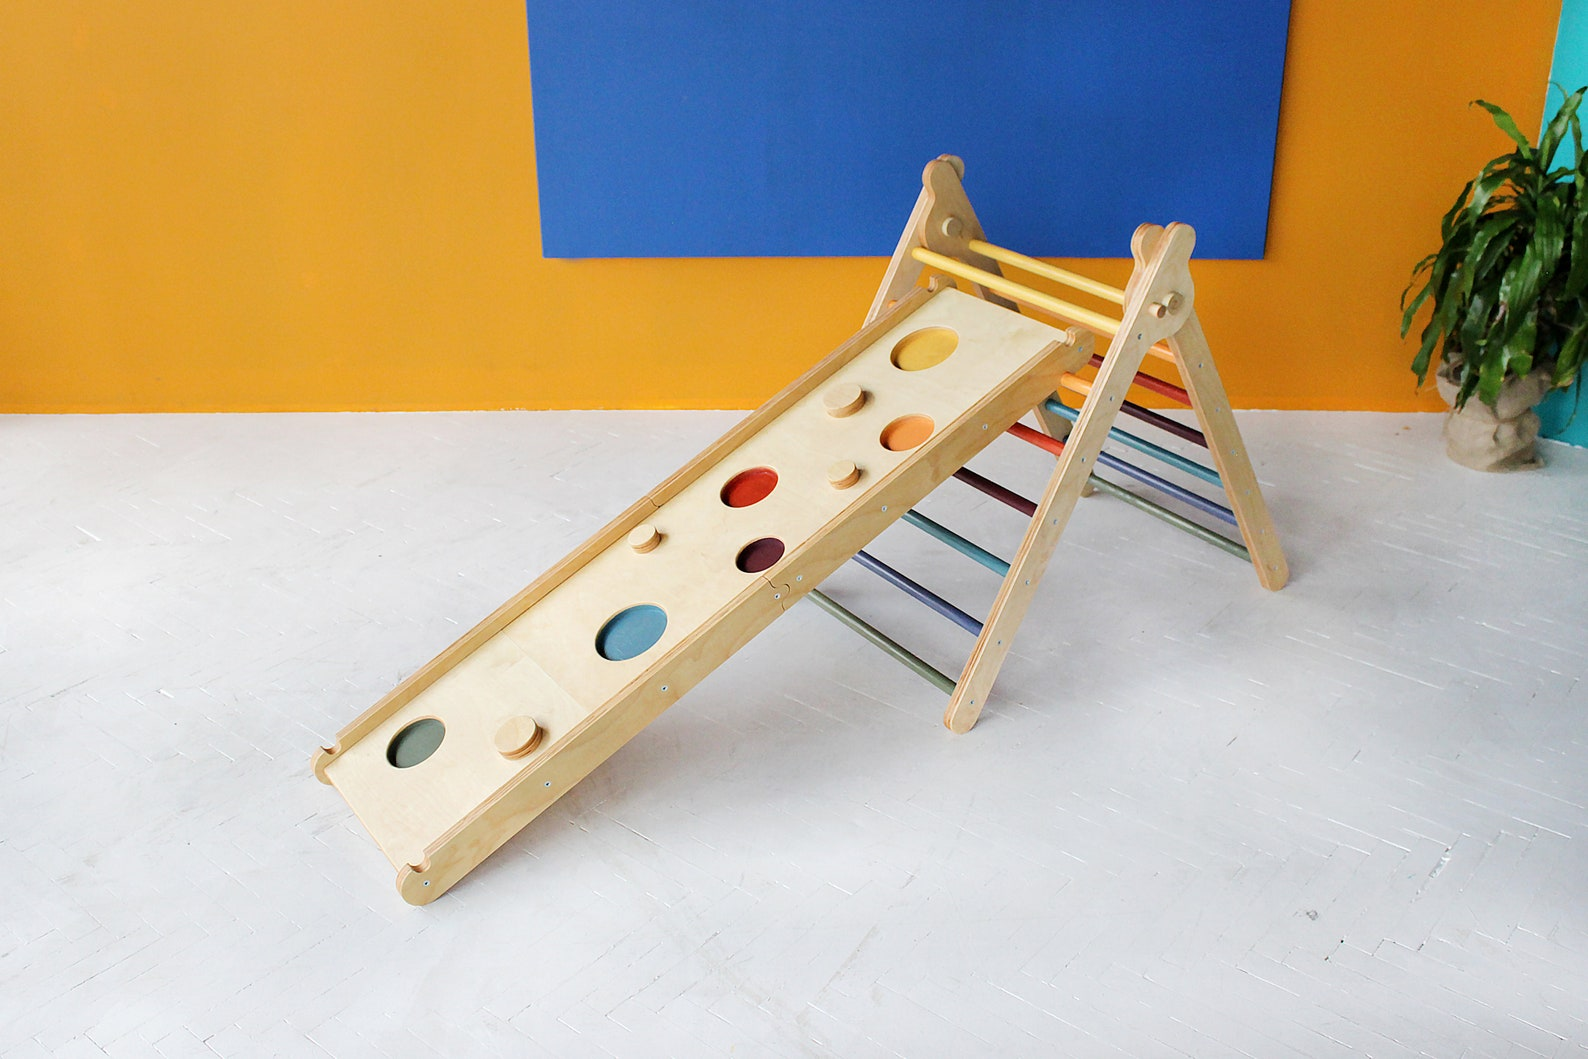 Gift Idea for Toddlers | Pikler triangle will keep your toddler busy for hours!